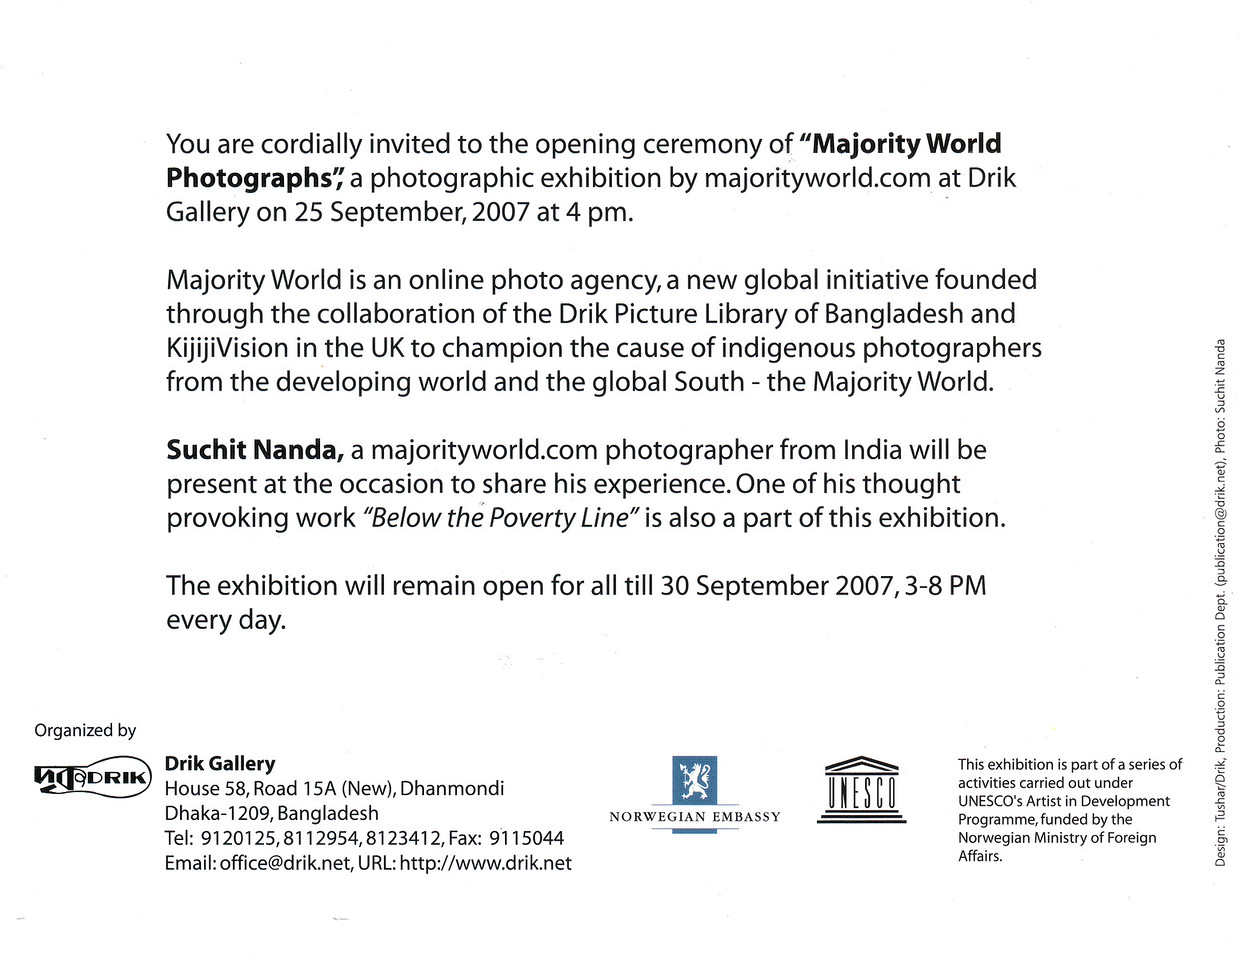 "Invitation to ""Below the Poverty Line"" photography exhibition of Suchit Nanda's images held from 25th to 30th September, 2007 at the Drik Gallery, Dhaka. The exhibition was part of a series of activities carried out under UNESCO's Artist in Development Programme funded by the Norwegian Ministry of Foreign Affairs (Norwegian Embassy). Suchit is a majority world photographer and regularly contributes to <a href=""http://www.majorityworld.com/"">http://www.majorityworld.com/</a>"